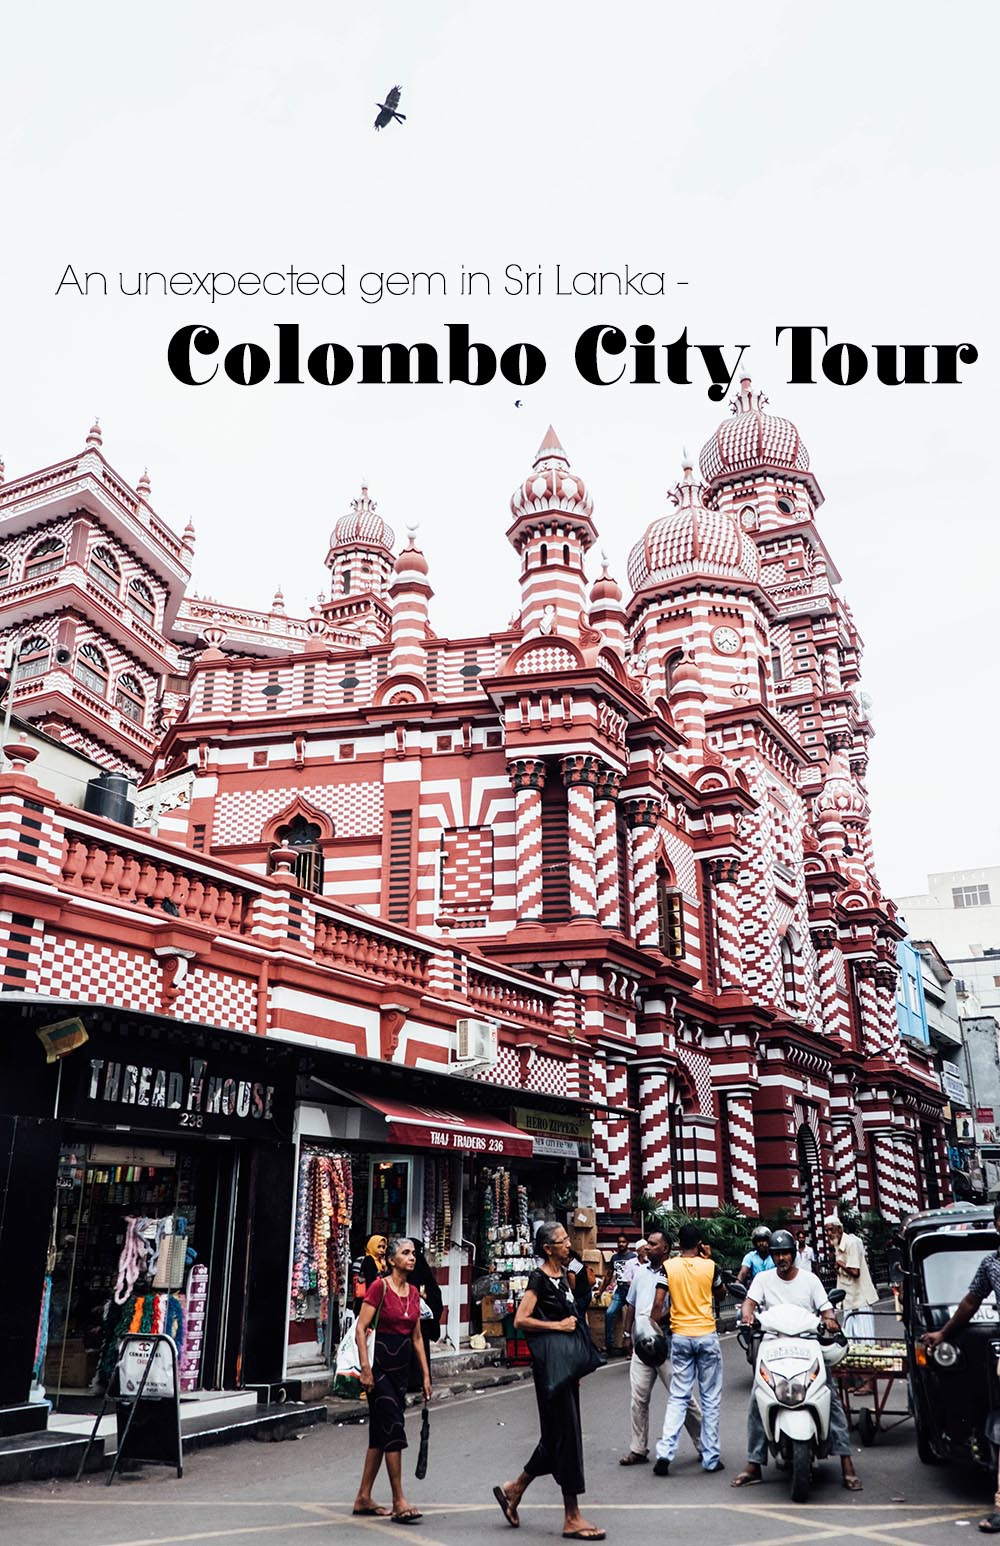 Heading to Sri Lanka? Don't miss out on its capital and stop for one of Ayu in the Wild's Colombo city tours - find true hidden gems! #colombo #srilanka